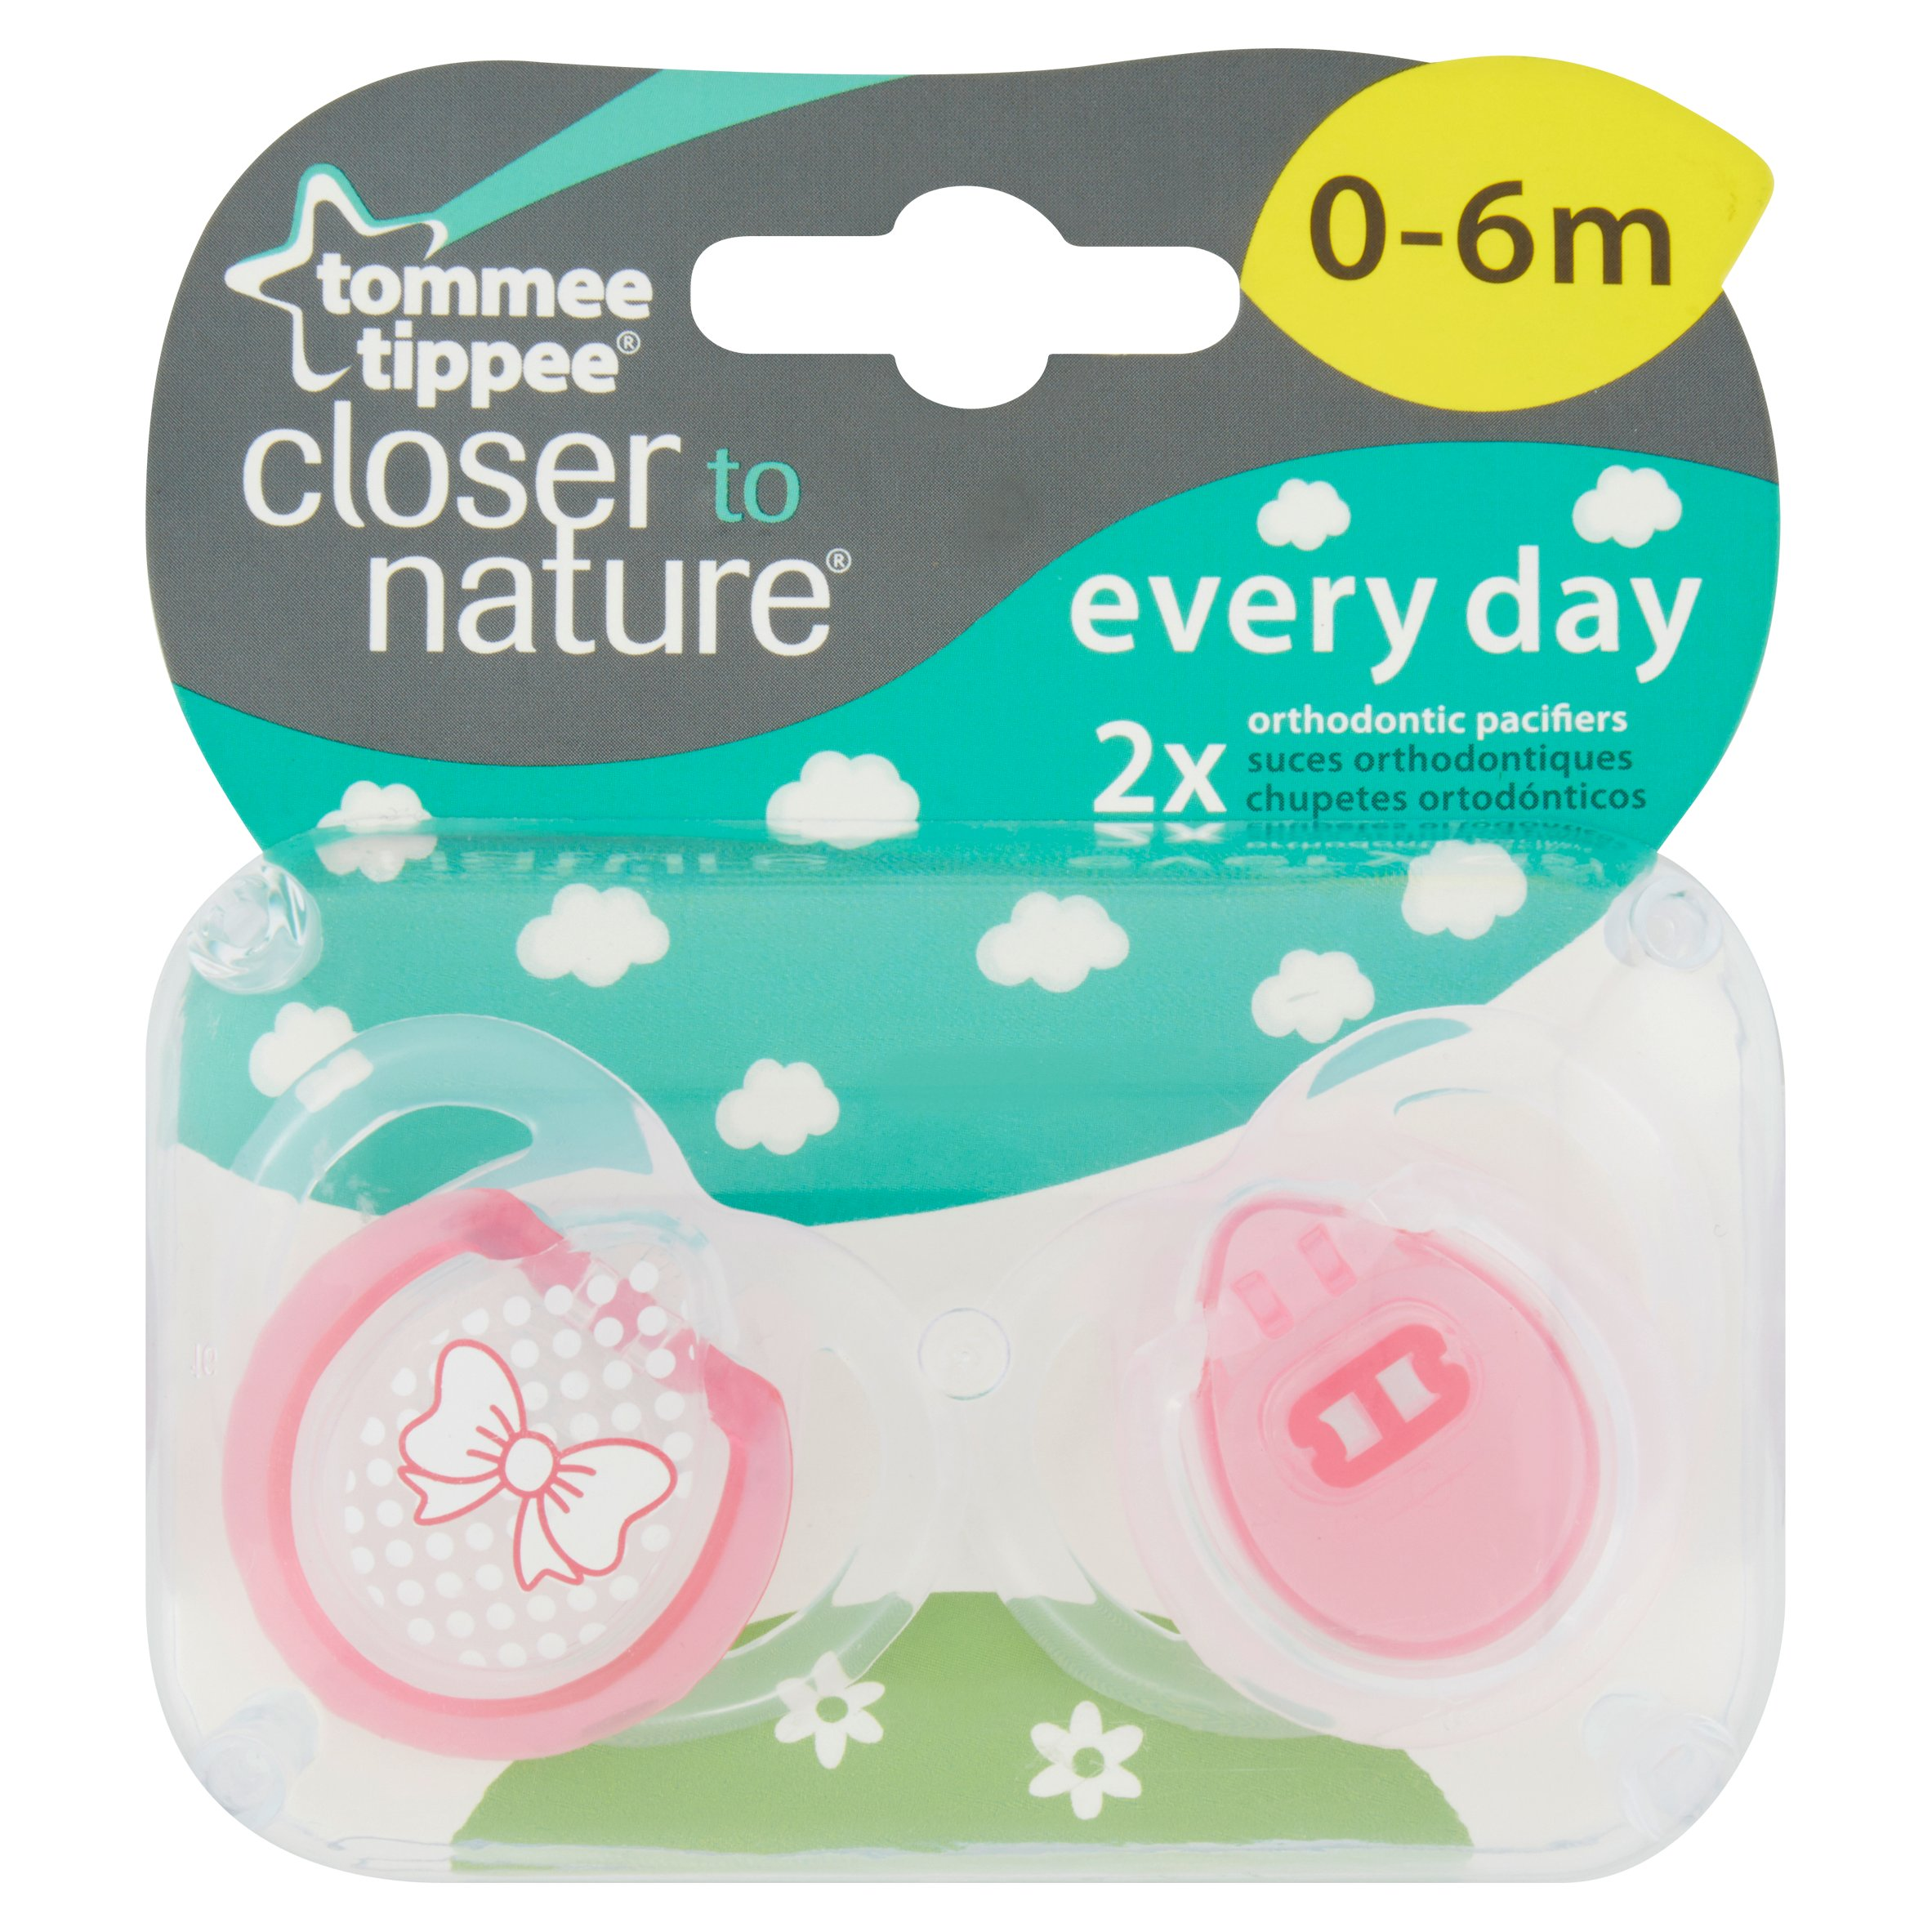 Tommee Tippee Closer to Nature 0-6 Month Everyday Pacifiers, 2pk, Girl by Tommee Tippee